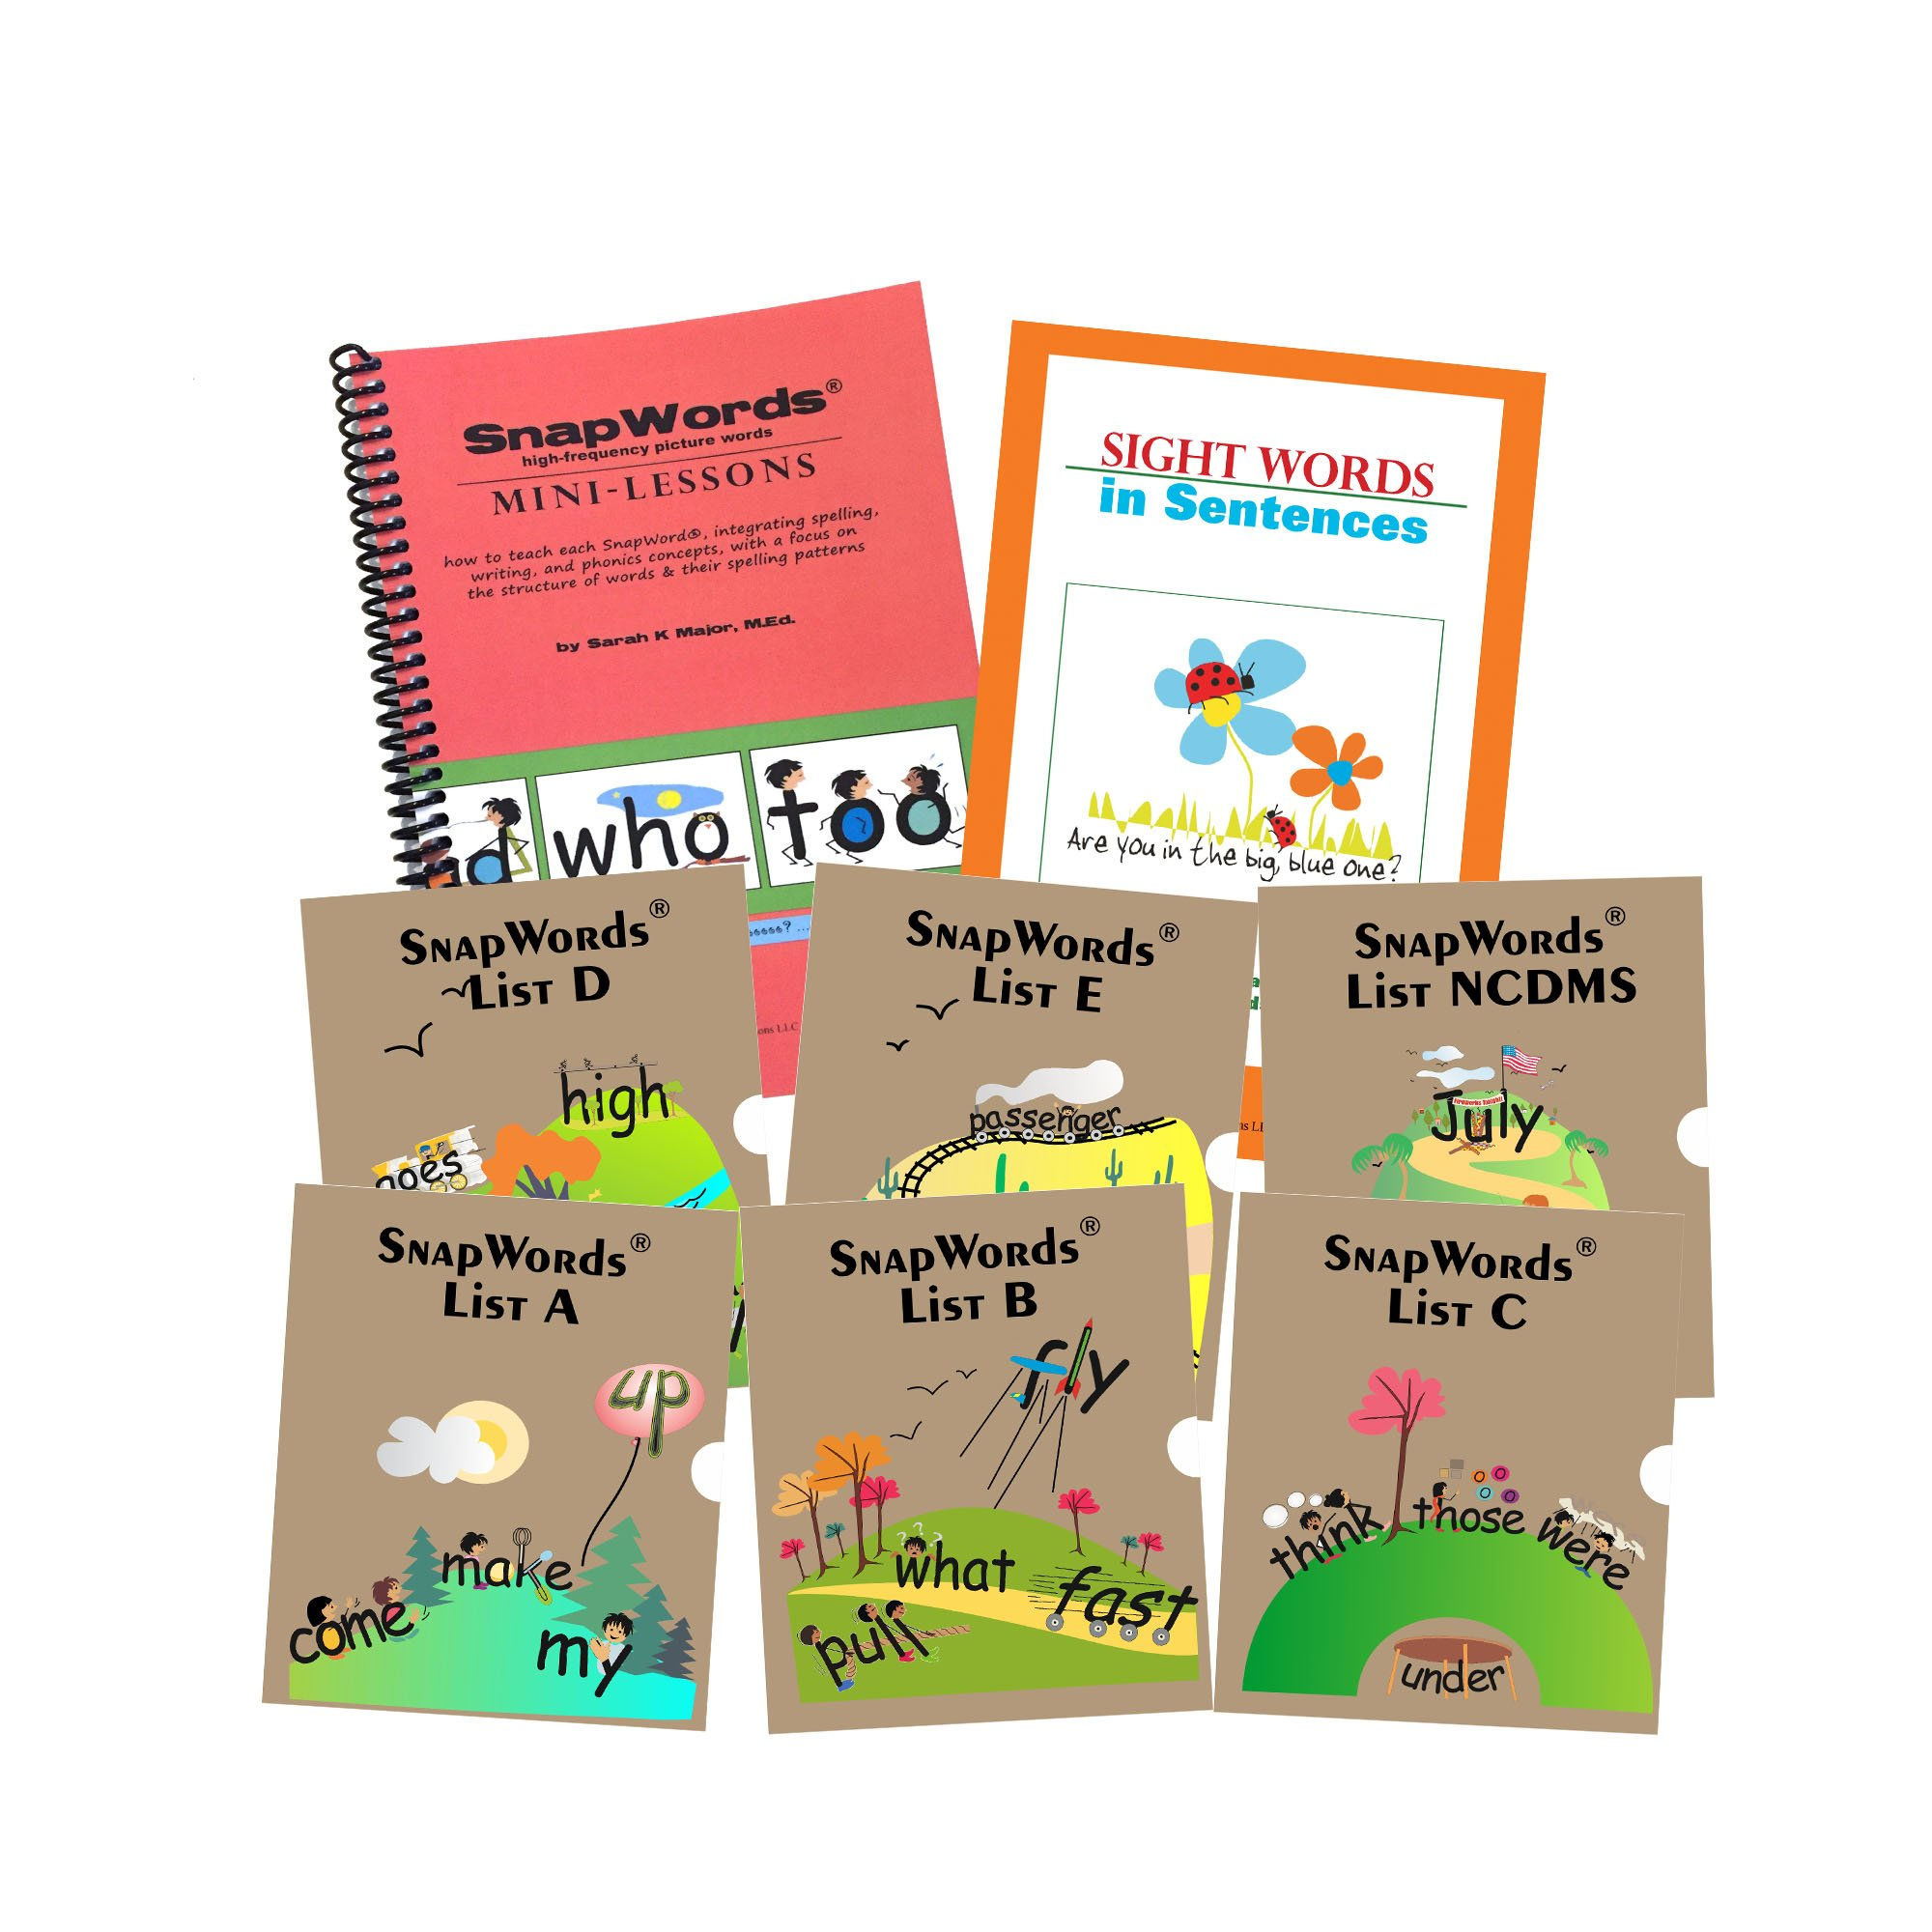 306 Snapwords Teaching Cards